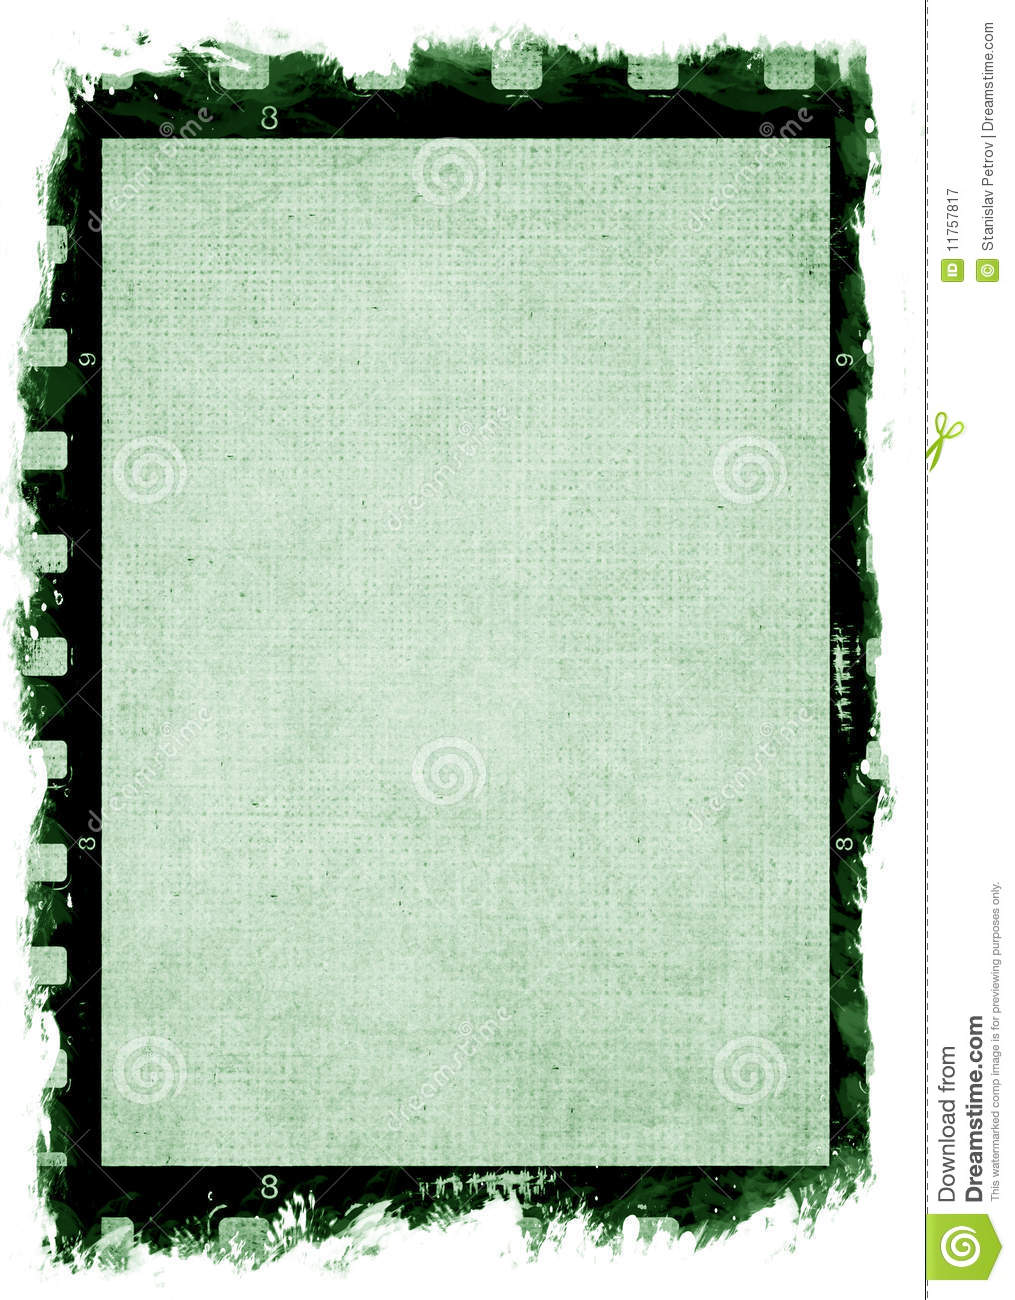 how to make a film strip out of paper